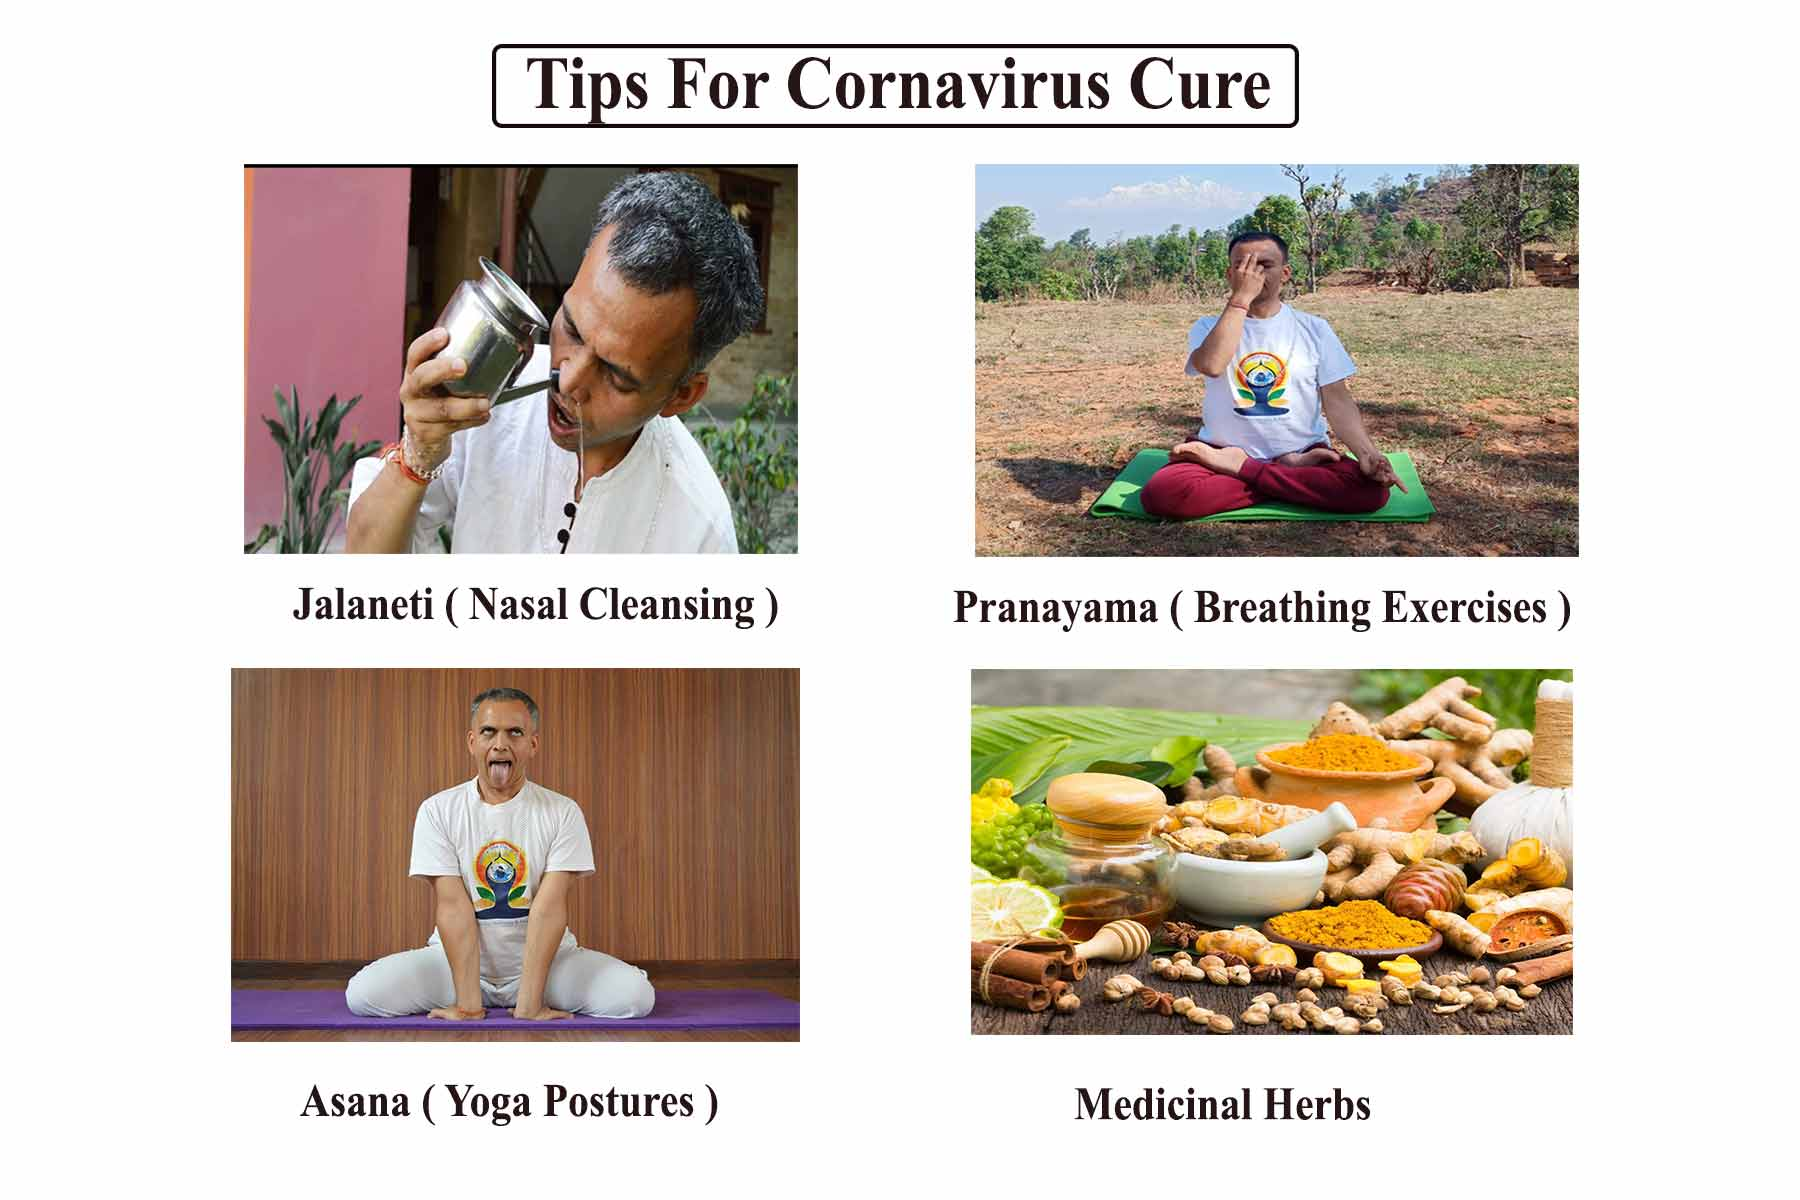 Things to do for Coronavirus Cure